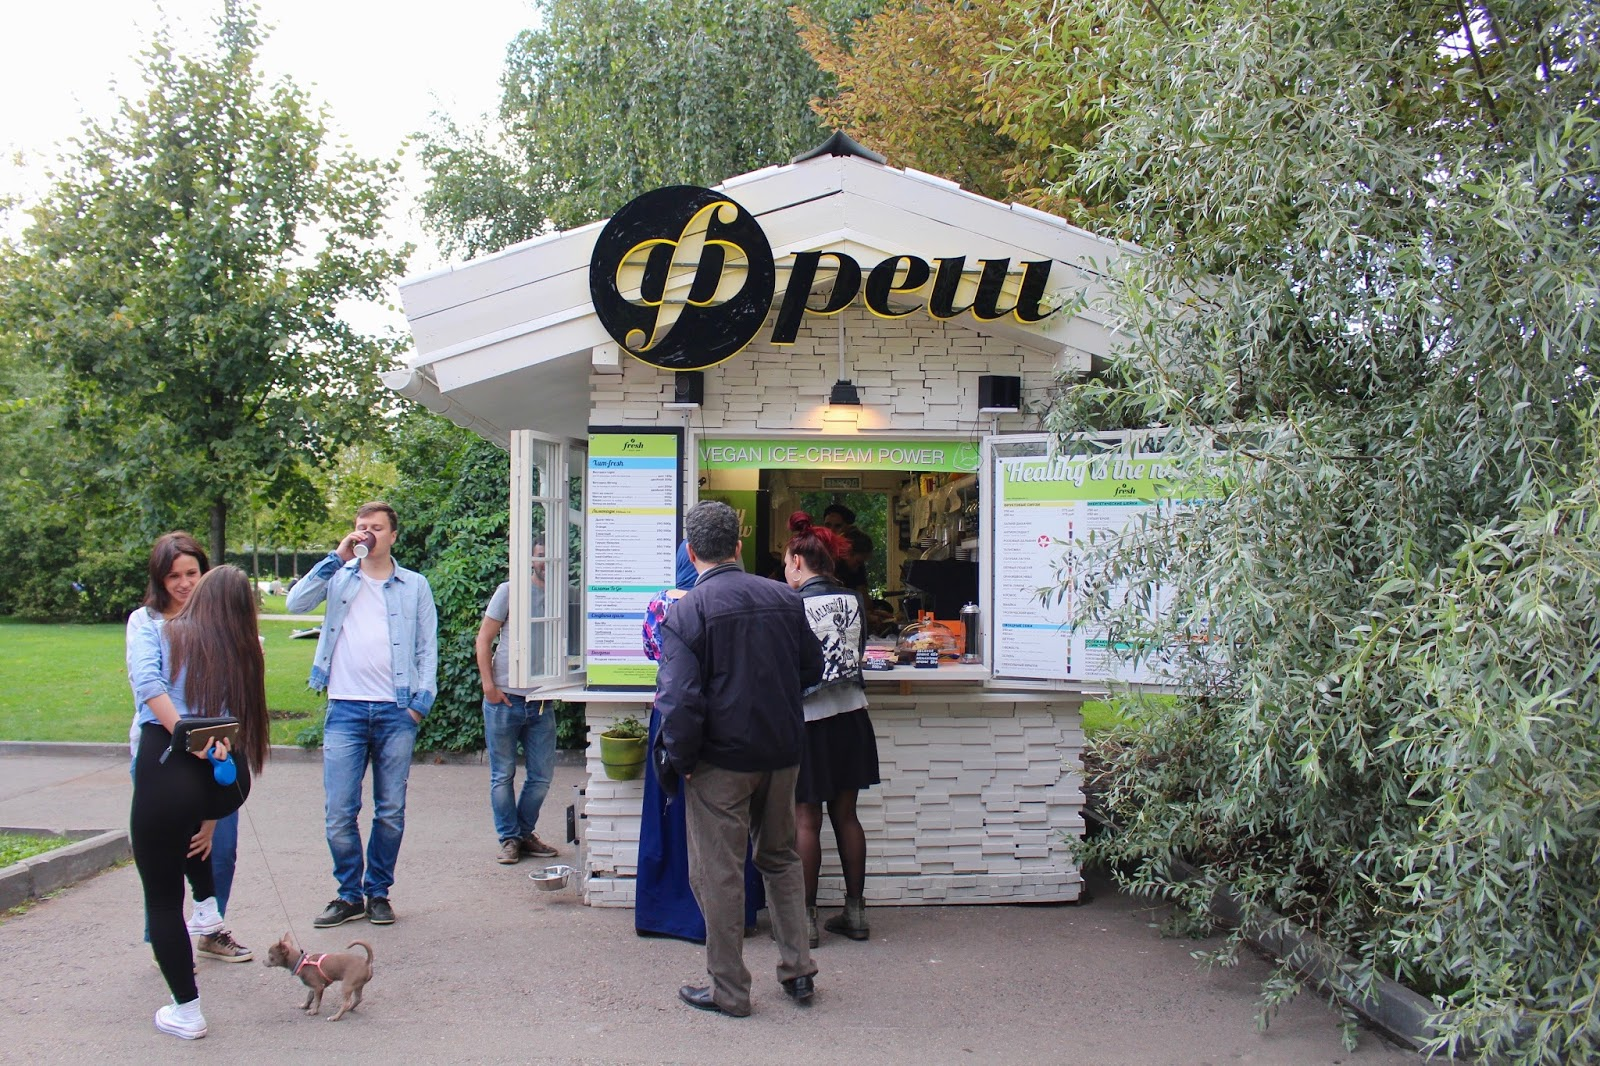 Moscow Food Guide Hotspots 2016 - Fresh Gorky Park